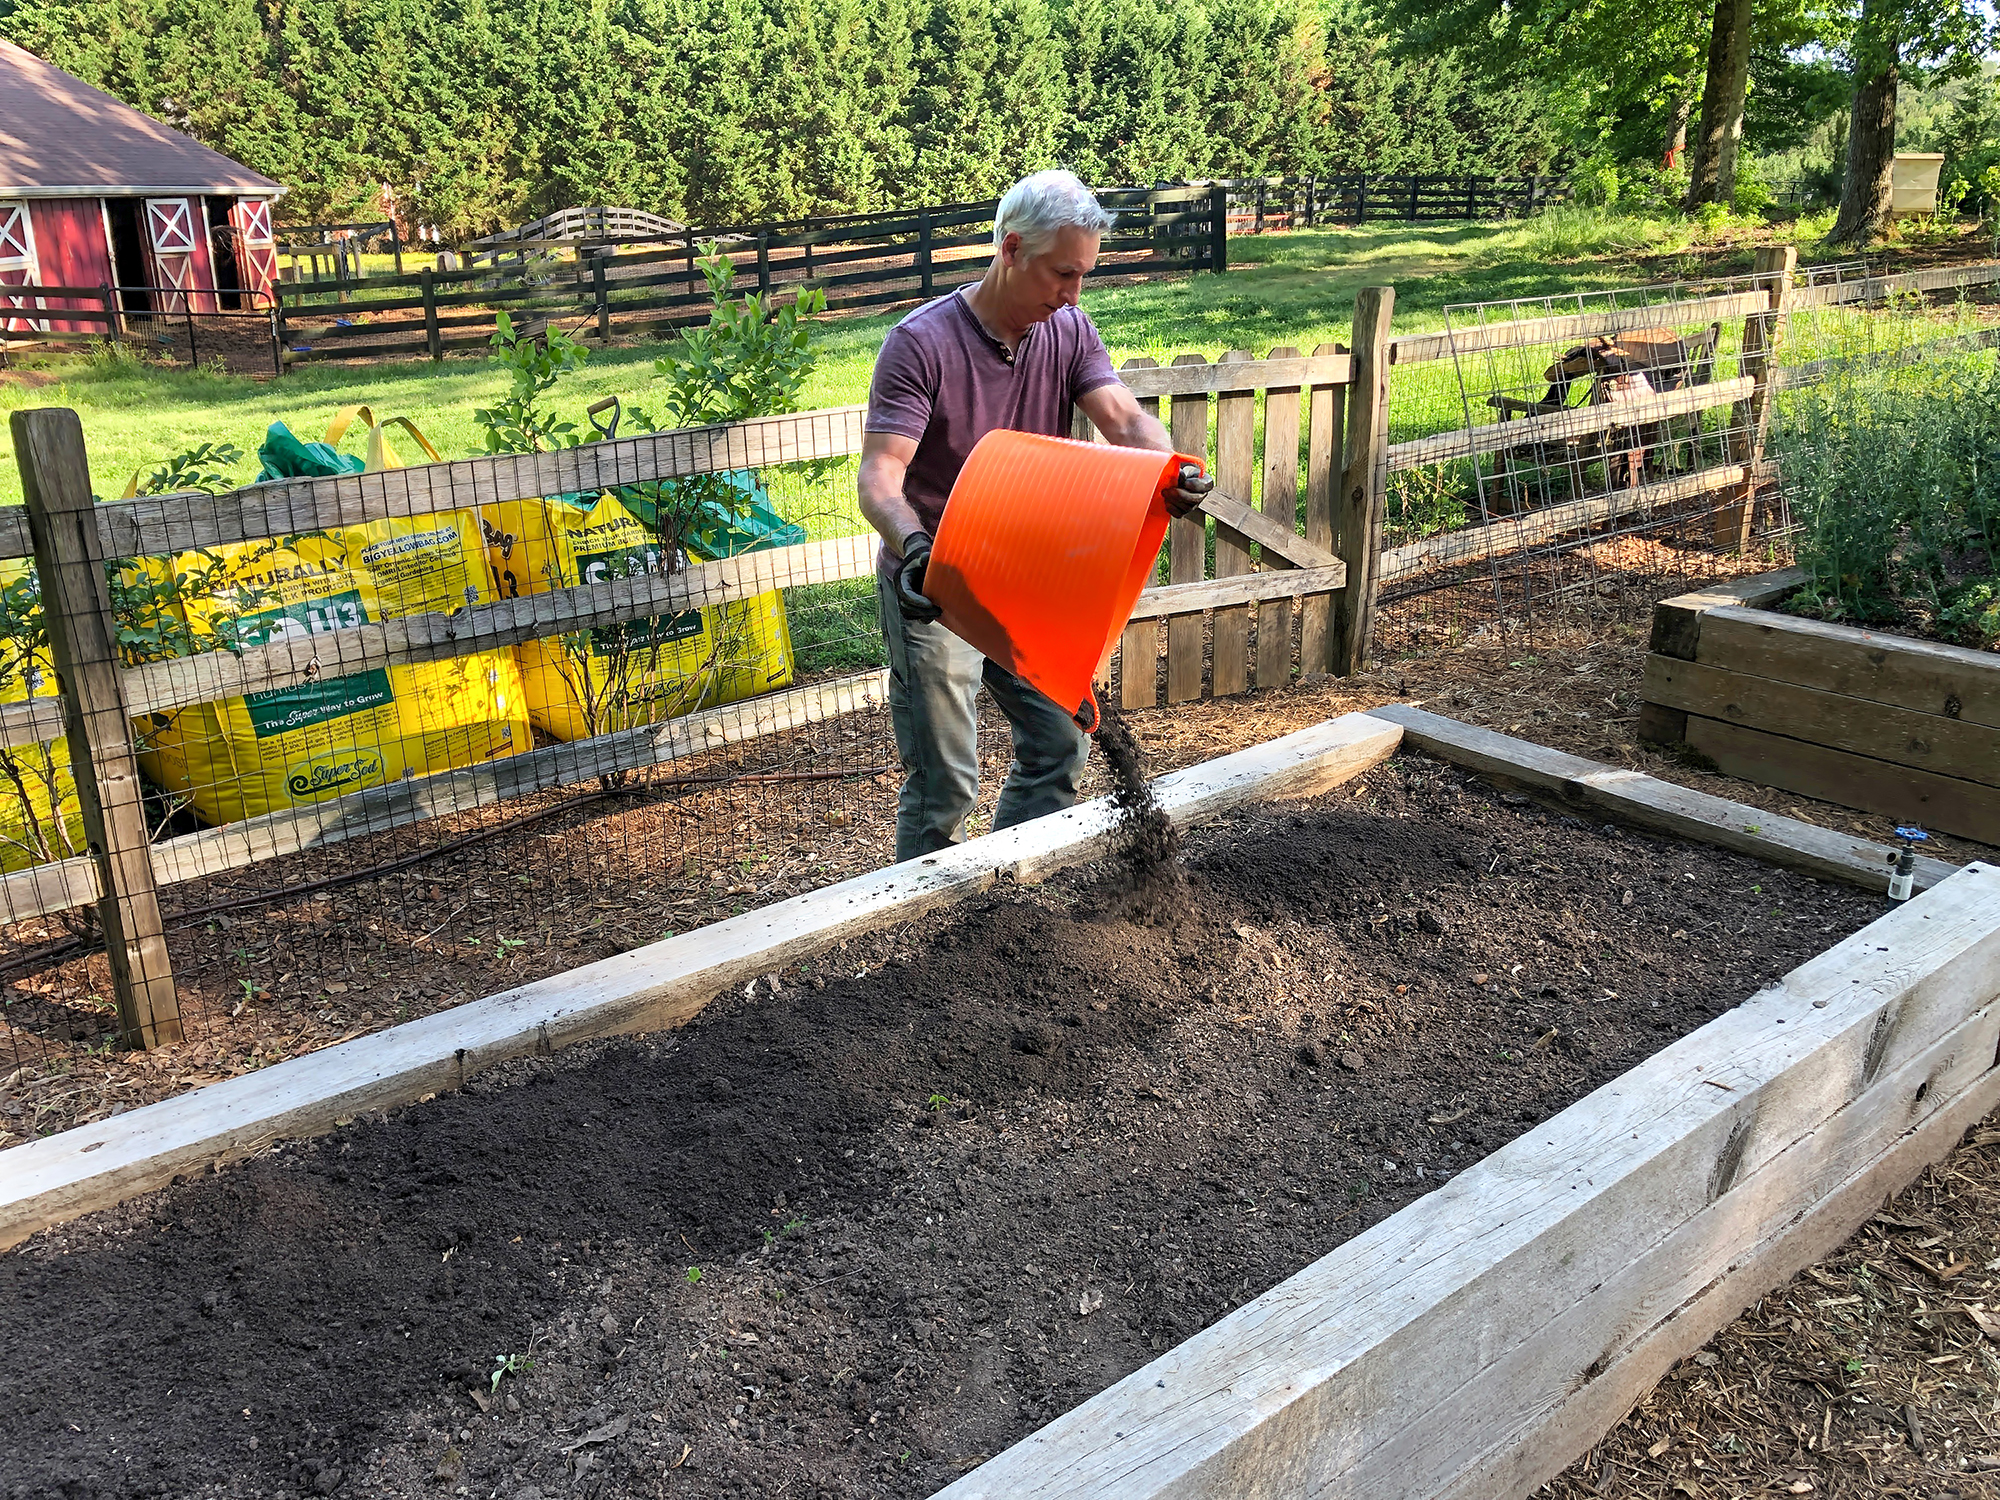 Joe Lamp'l topping off his raised beds with Soil3 compost